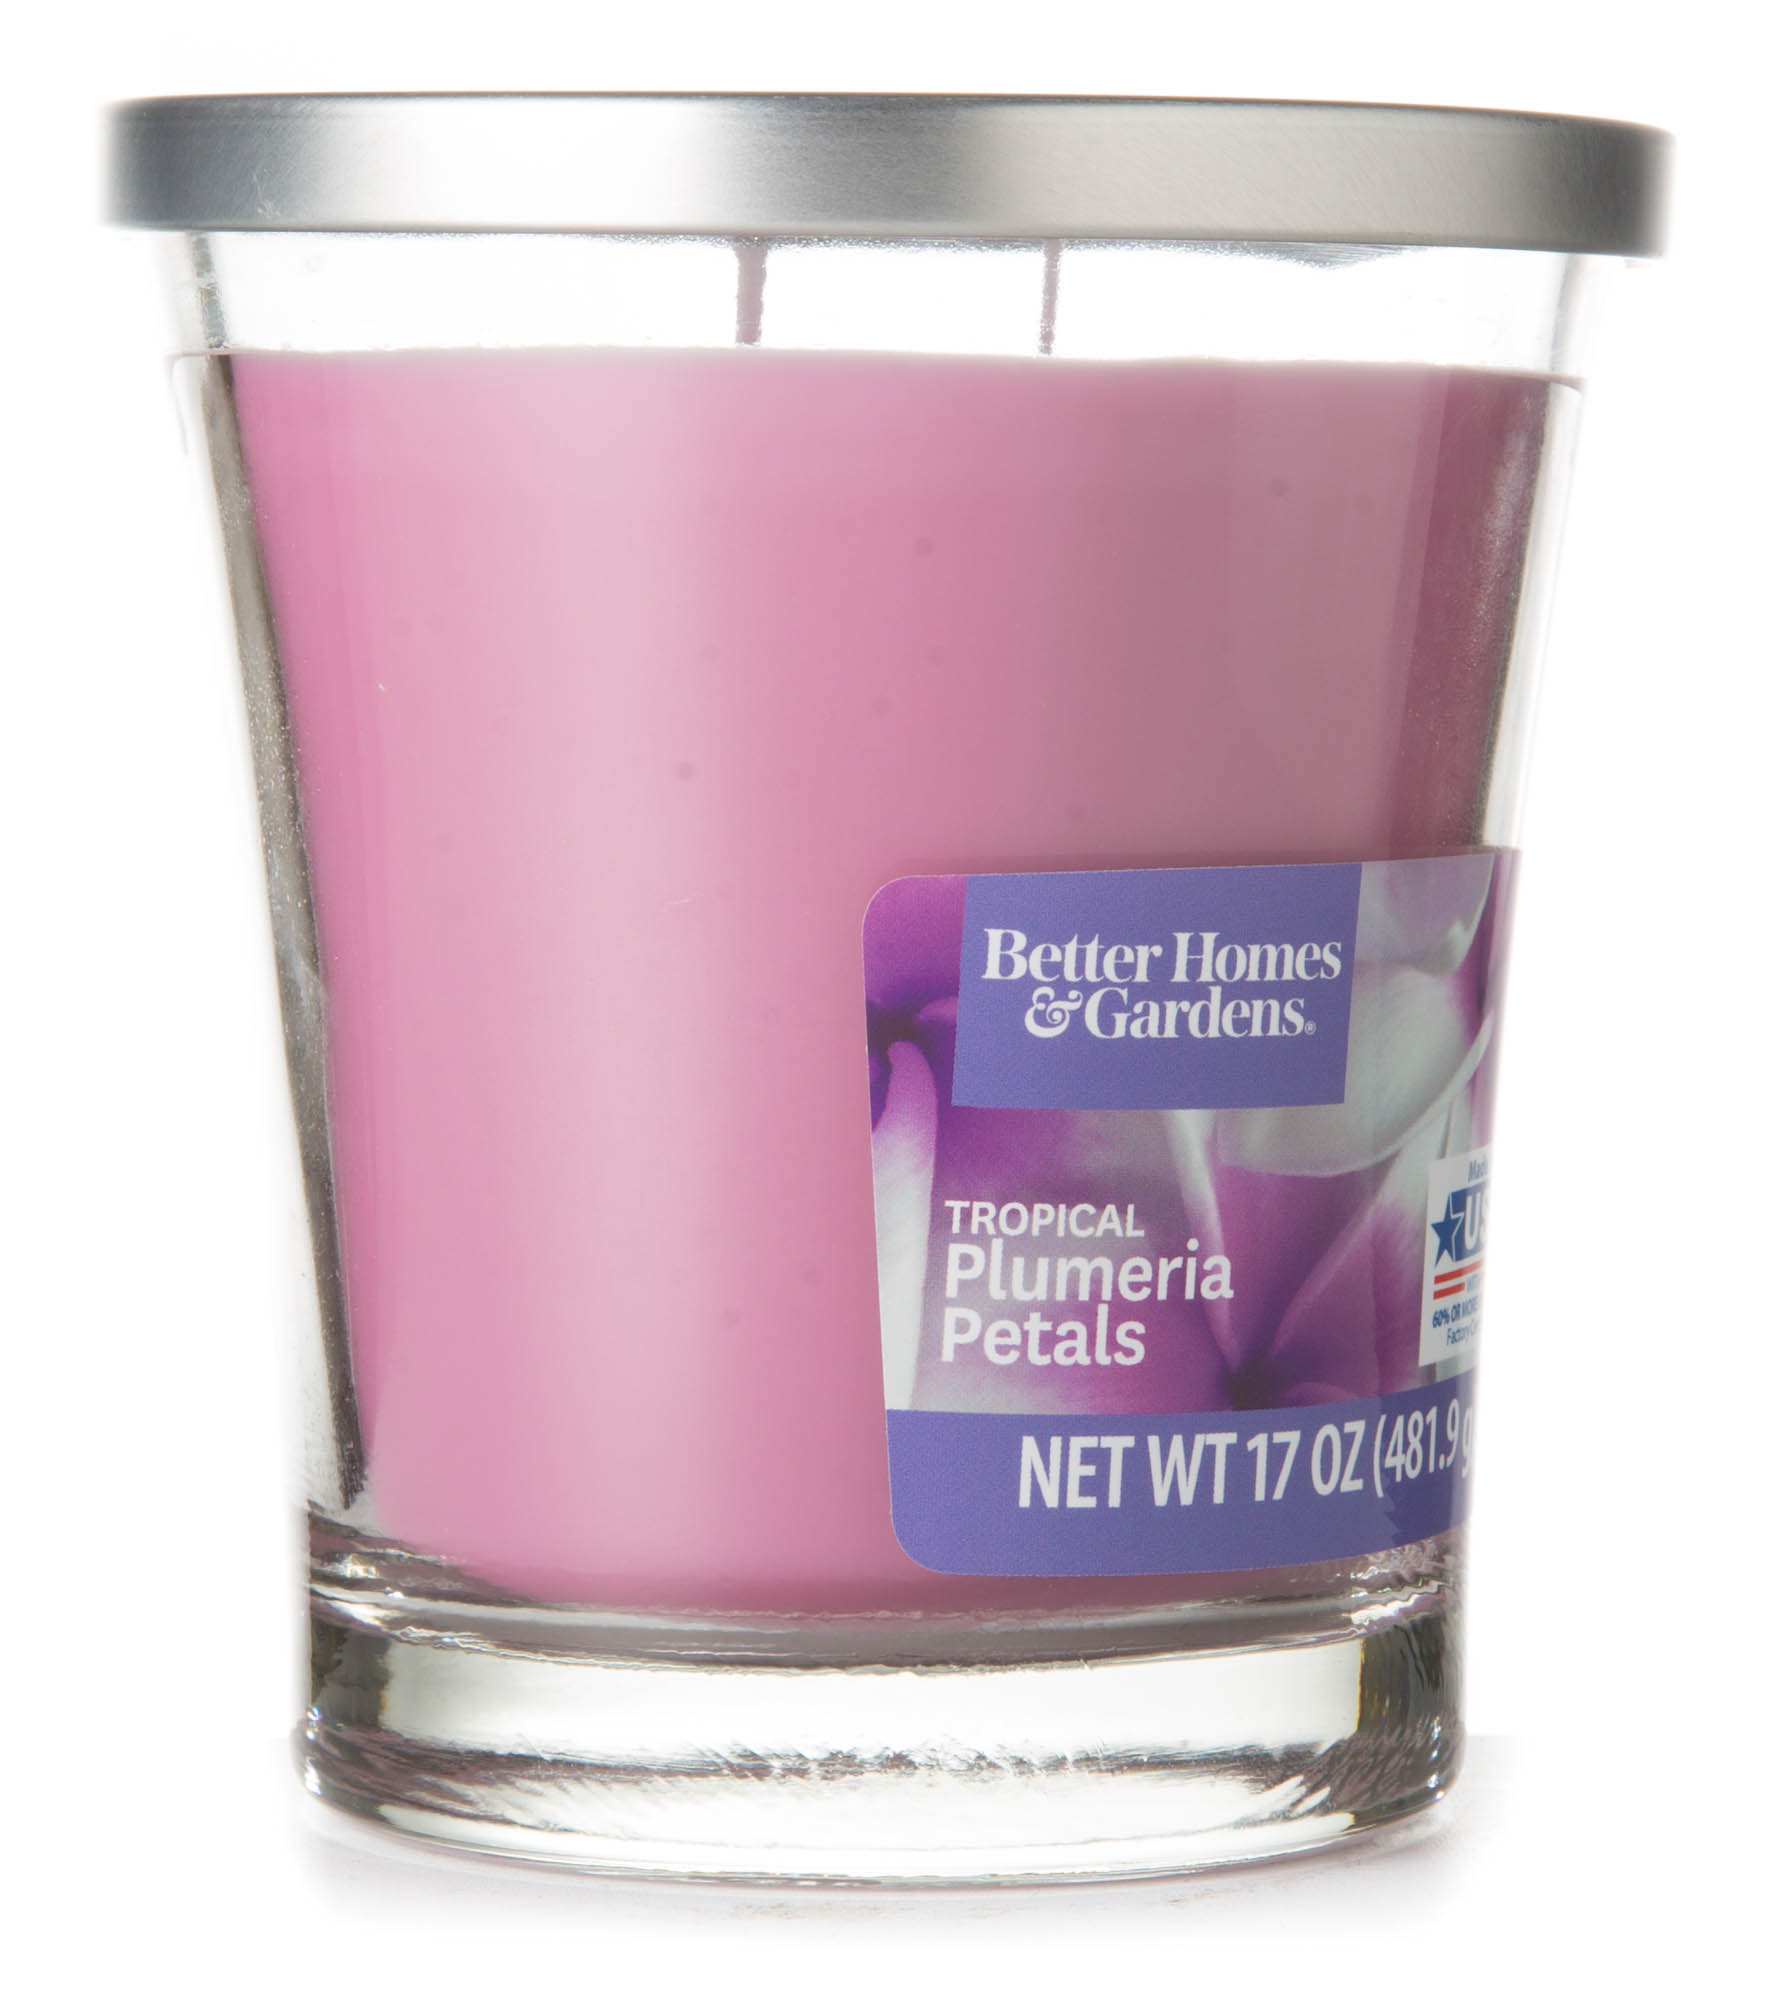 Better Homes and Gardens Tropical Plumeria Petals Candle, 17 oz ...